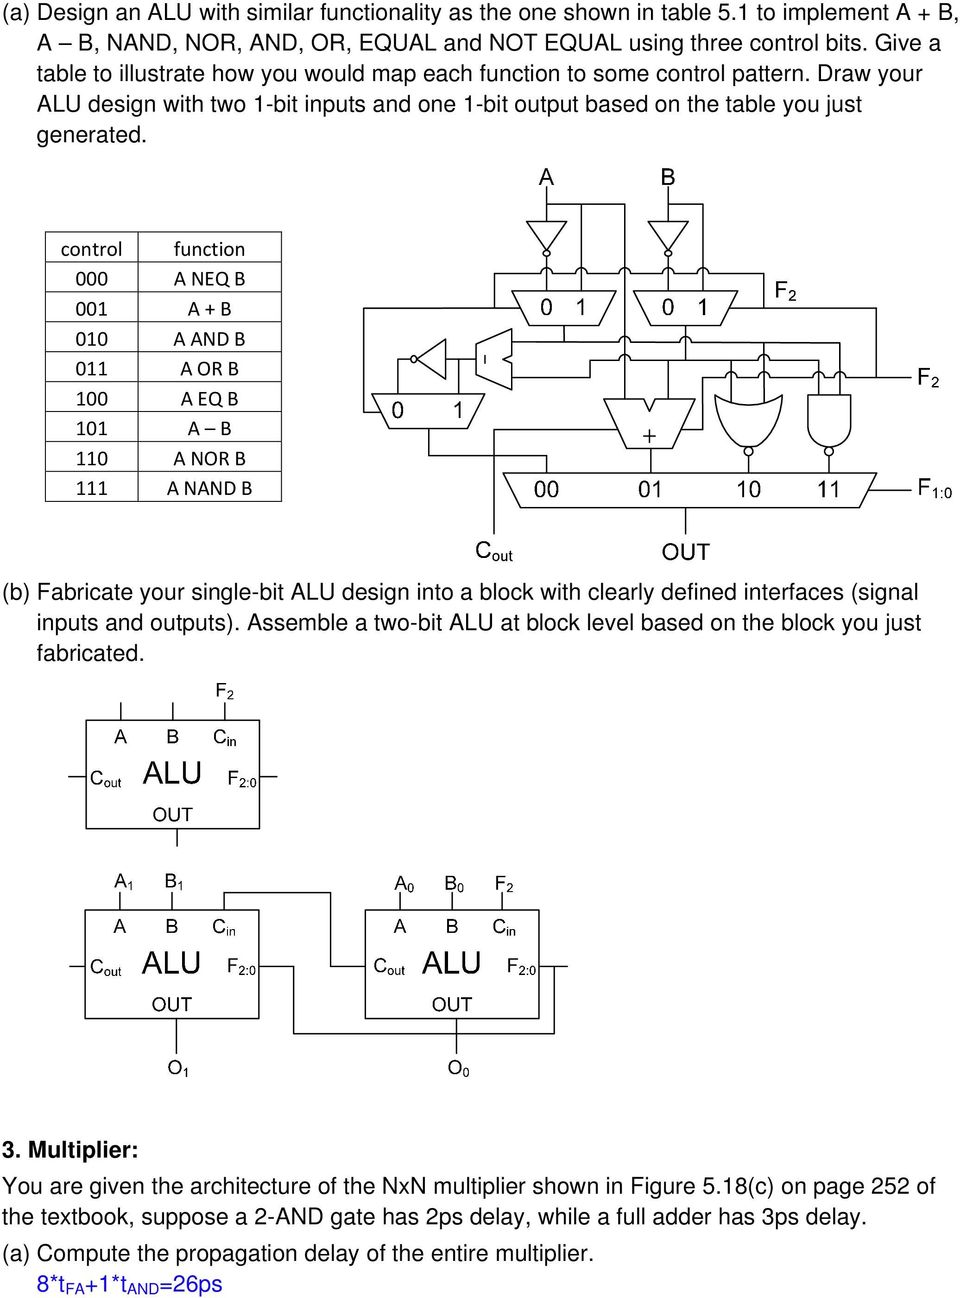 Cse140 Homework 7 Solution Pdf Bit As Output Bits The Block Diagram Of A Full Adder Is Shown Below Control Function 000 Neq B 001 010 And 011